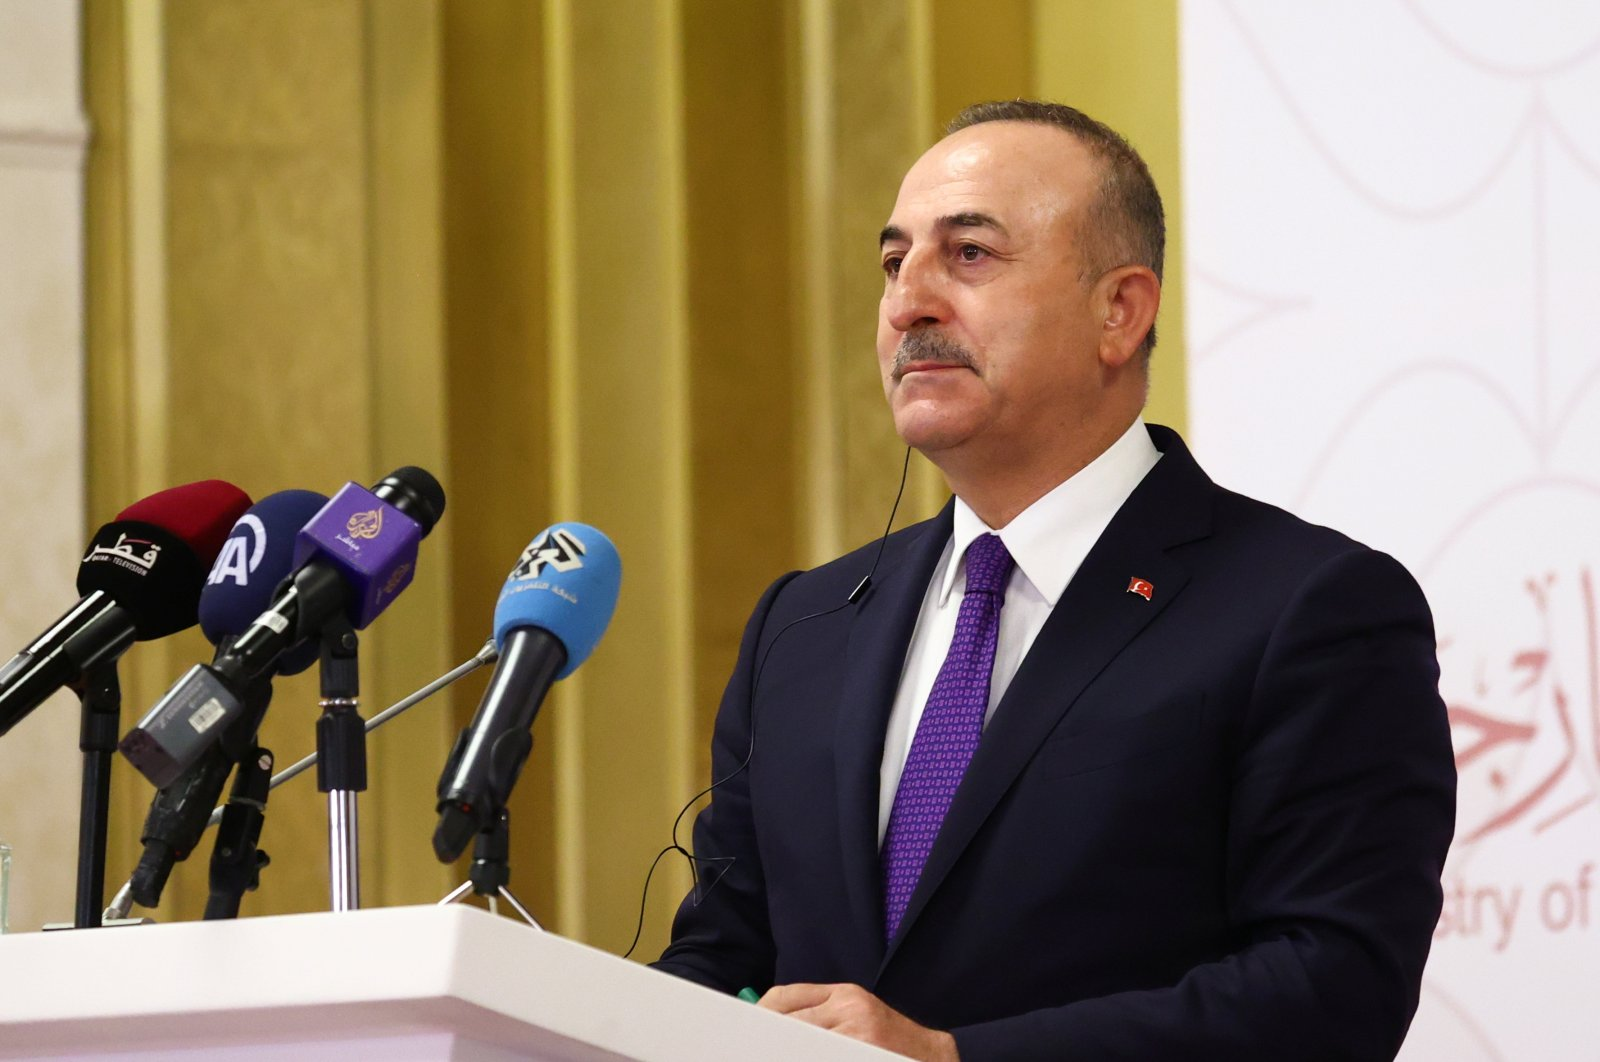 Foreign Minister Mevlüt Çavuşoğlu attends a news conference in Doha, Qatar, March 11, 2021. (REUTERS Photo)